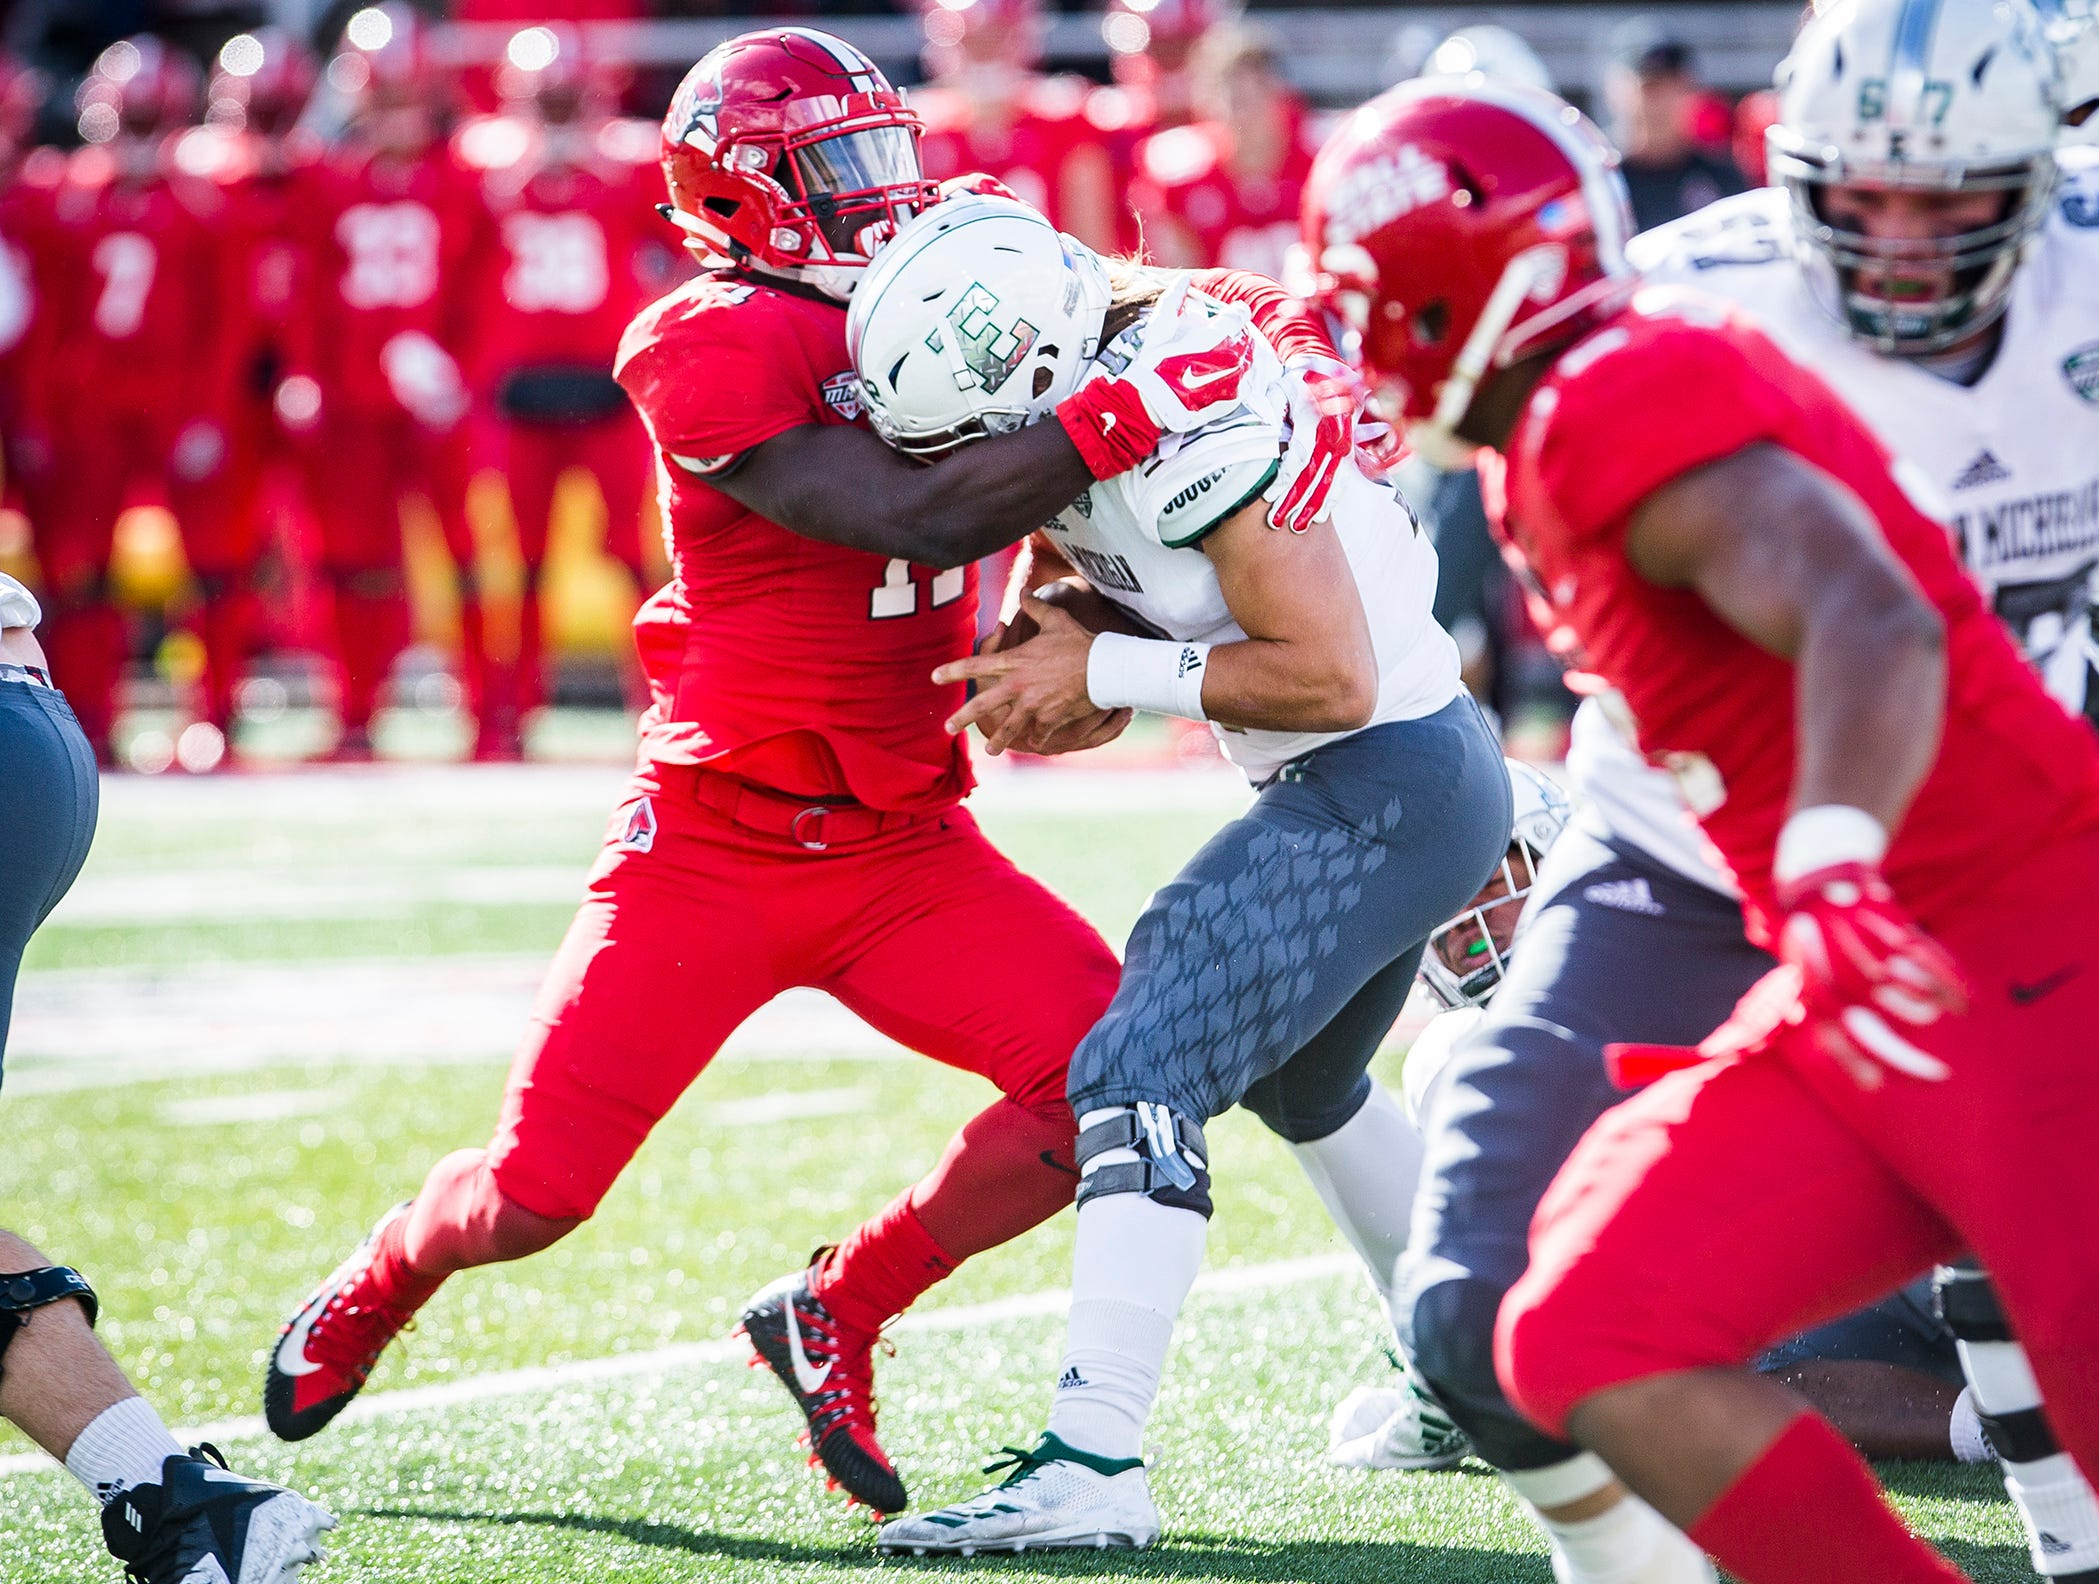 Ball State's Corey Lacanaria sacks Eastern Michigan's Tyler Wiegers during their game at Scheumann Stadium Saturday, Oct. 20, 2018.